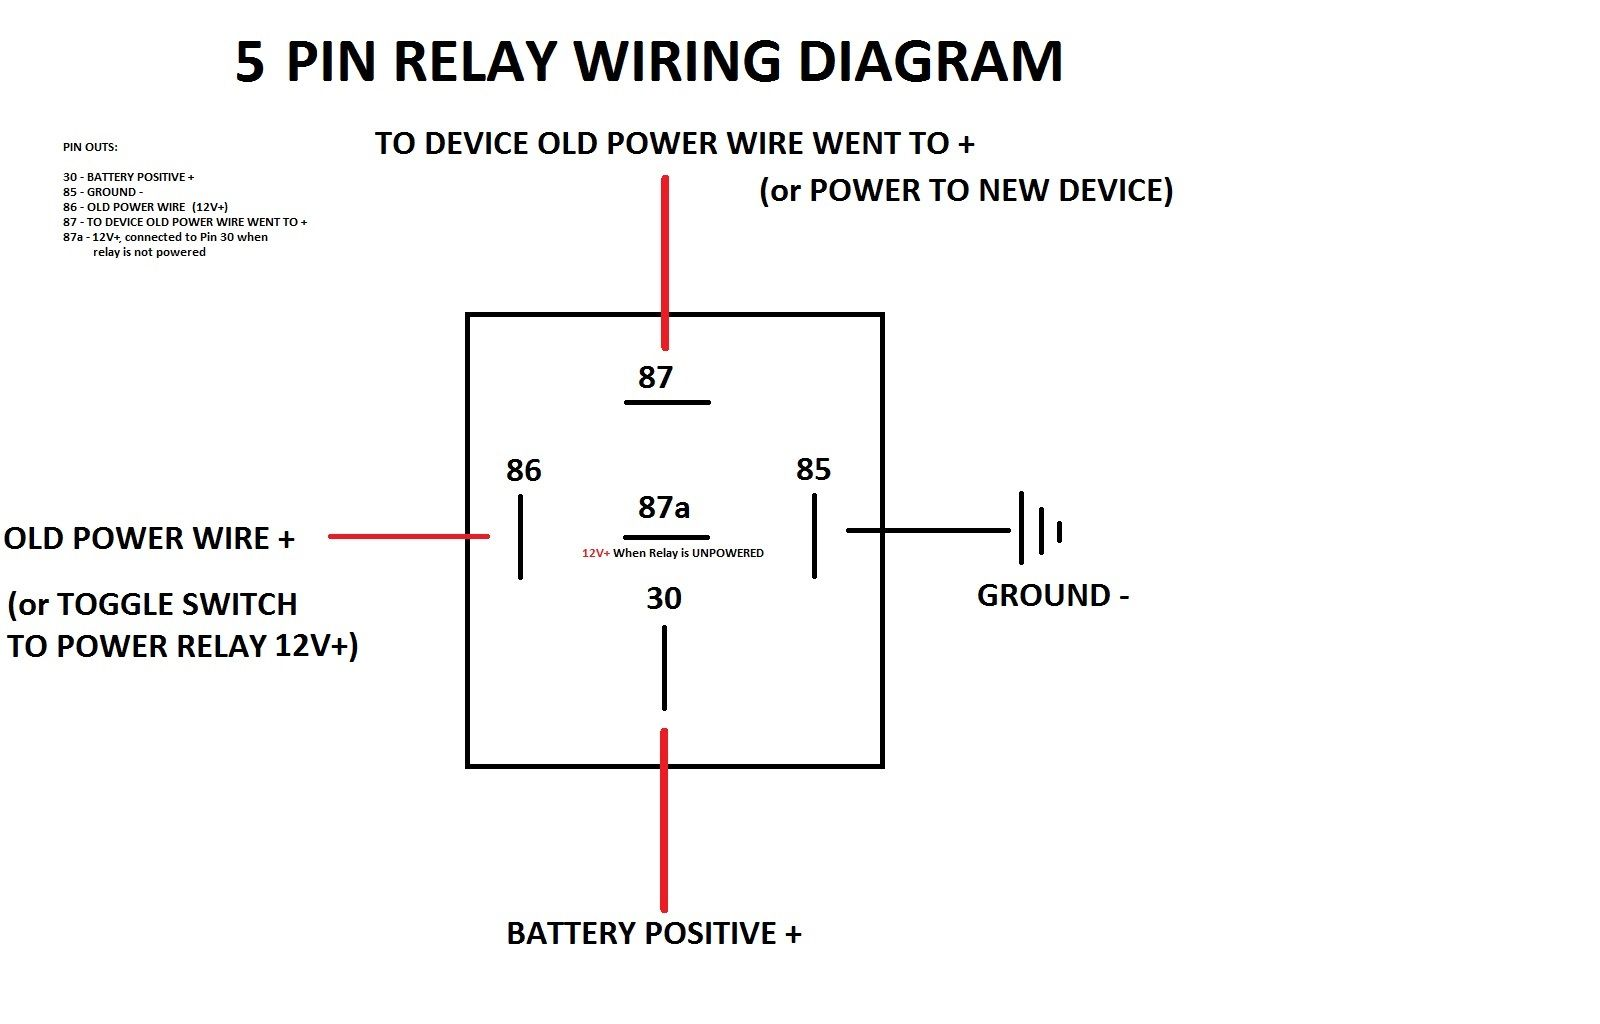 simple 5 pin relay diagram dsmtuners diagram, circuit power window wire diagram power window wiring diagram single #11